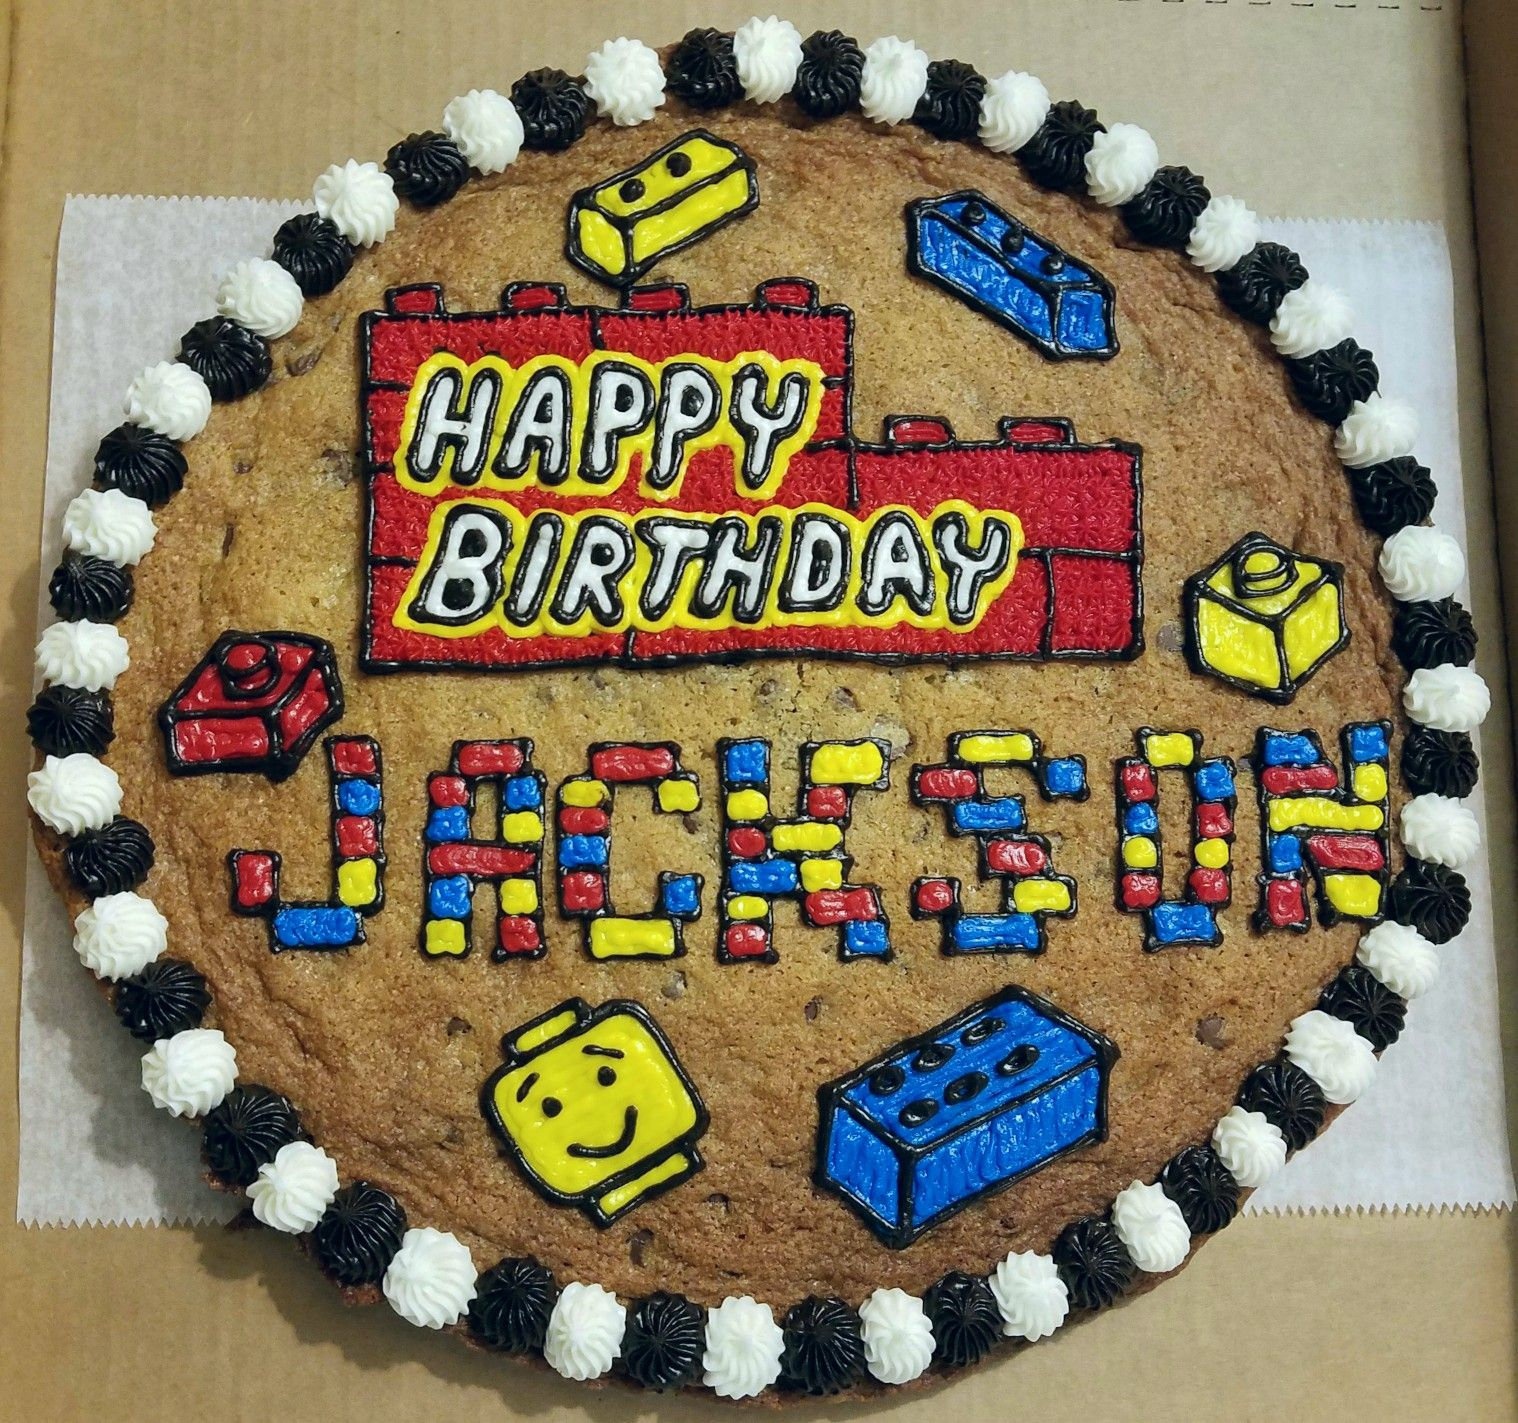 Strange Lego Cookie Cake With Images Chocolate Chip Cookie Cake Funny Birthday Cards Online Sheoxdamsfinfo